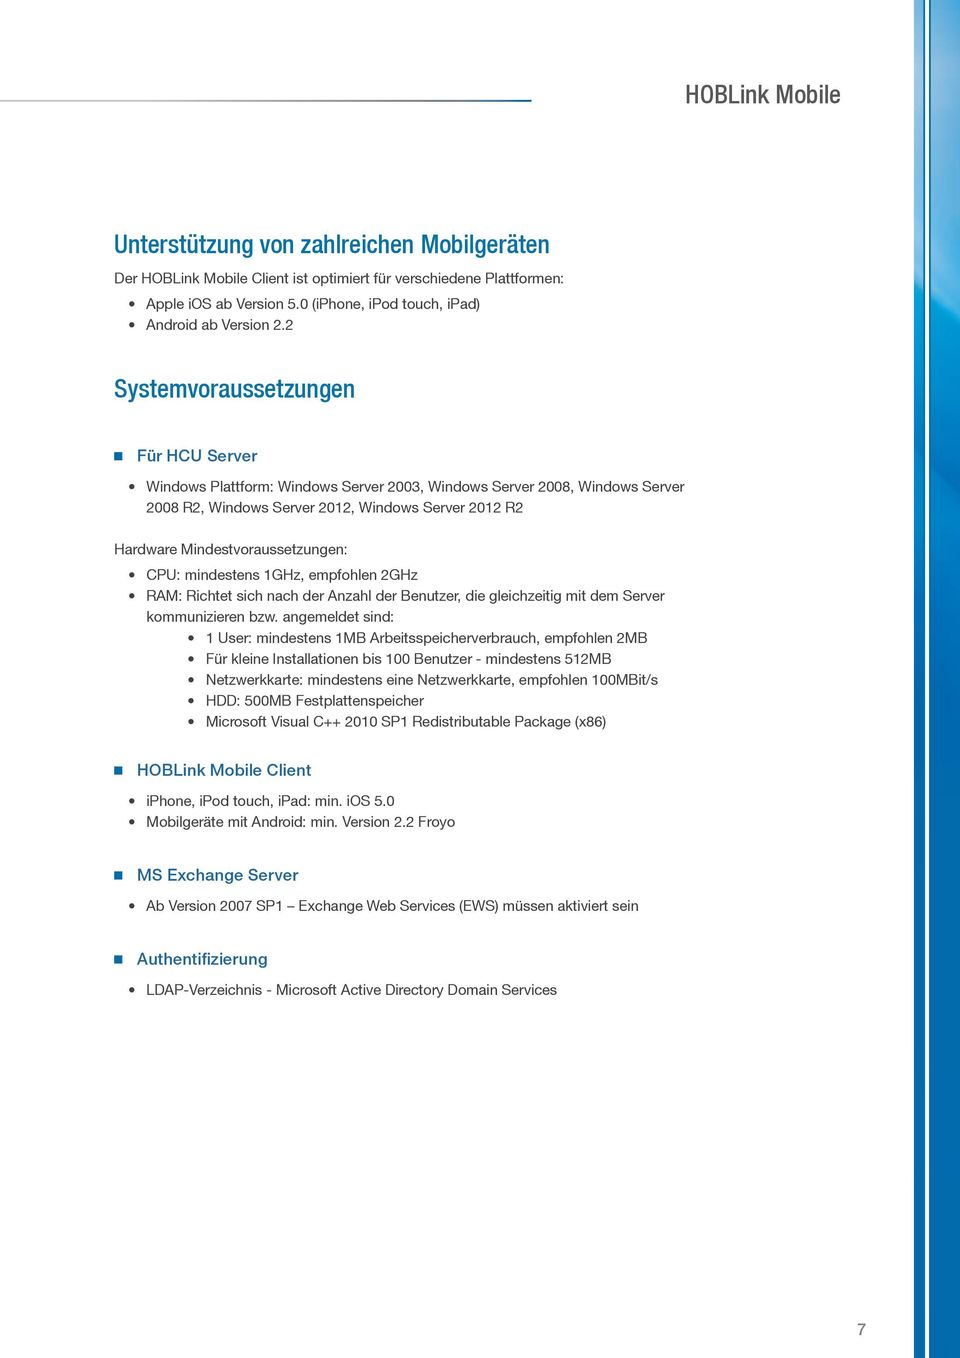 2 Systemvoraussetzungen Für HCU Server Windows Plattform: Windows Server 2003, Windows Server 2008, Windows Server 2008 R2, Windows Server 2012, Windows Server 2012 R2 Hardware